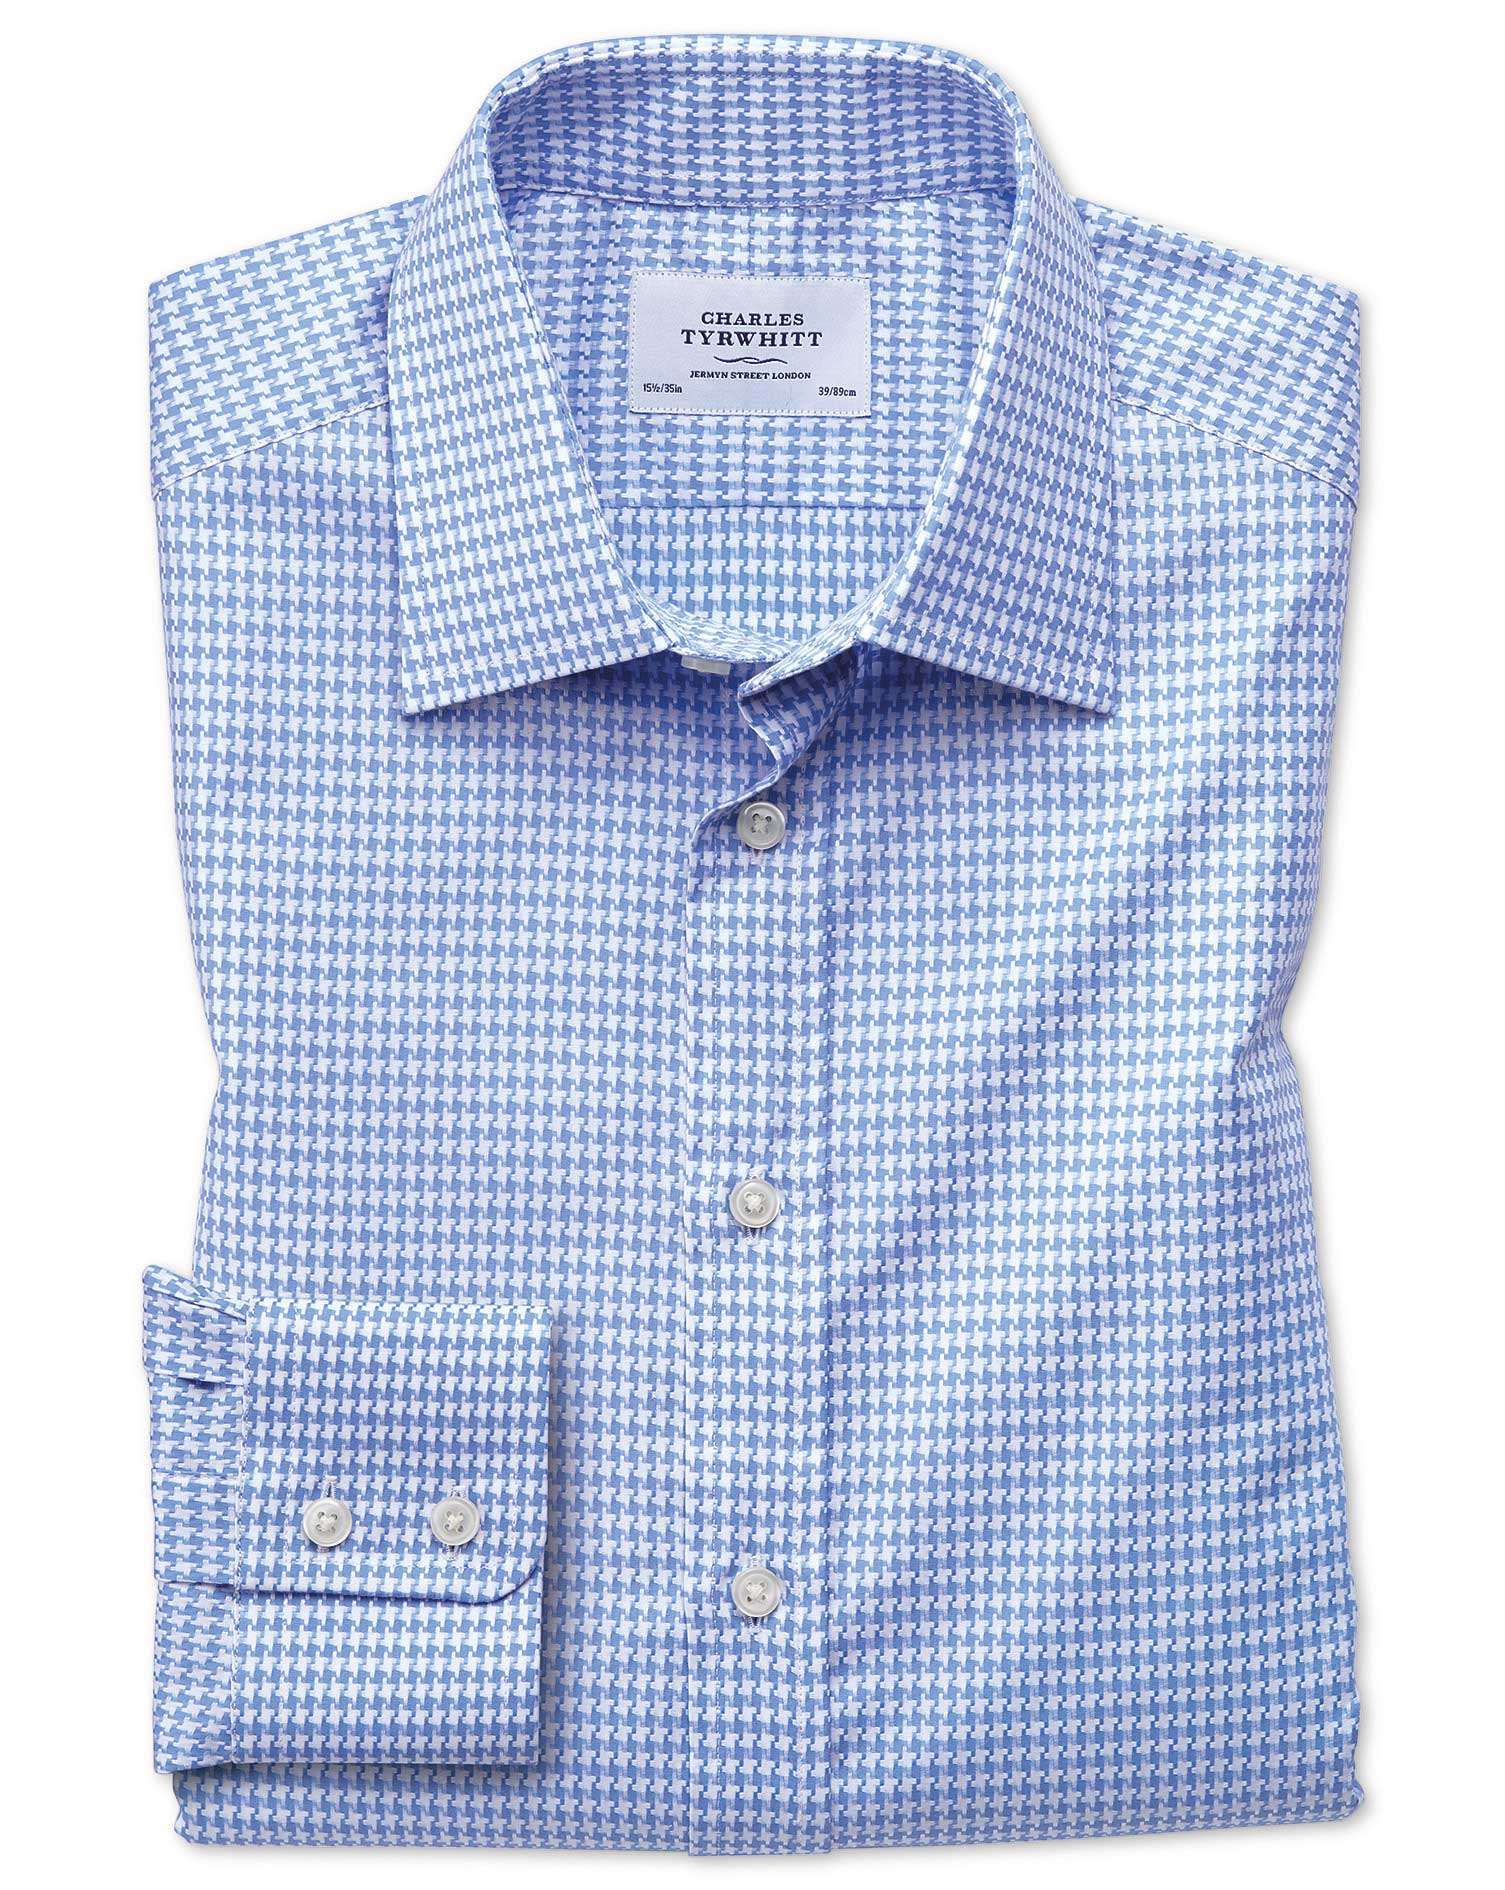 Slim Fit Large Puppytooth Sky Blue Cotton Formal Shirt Single Cuff Size 15/34 by Charles Tyrwhitt